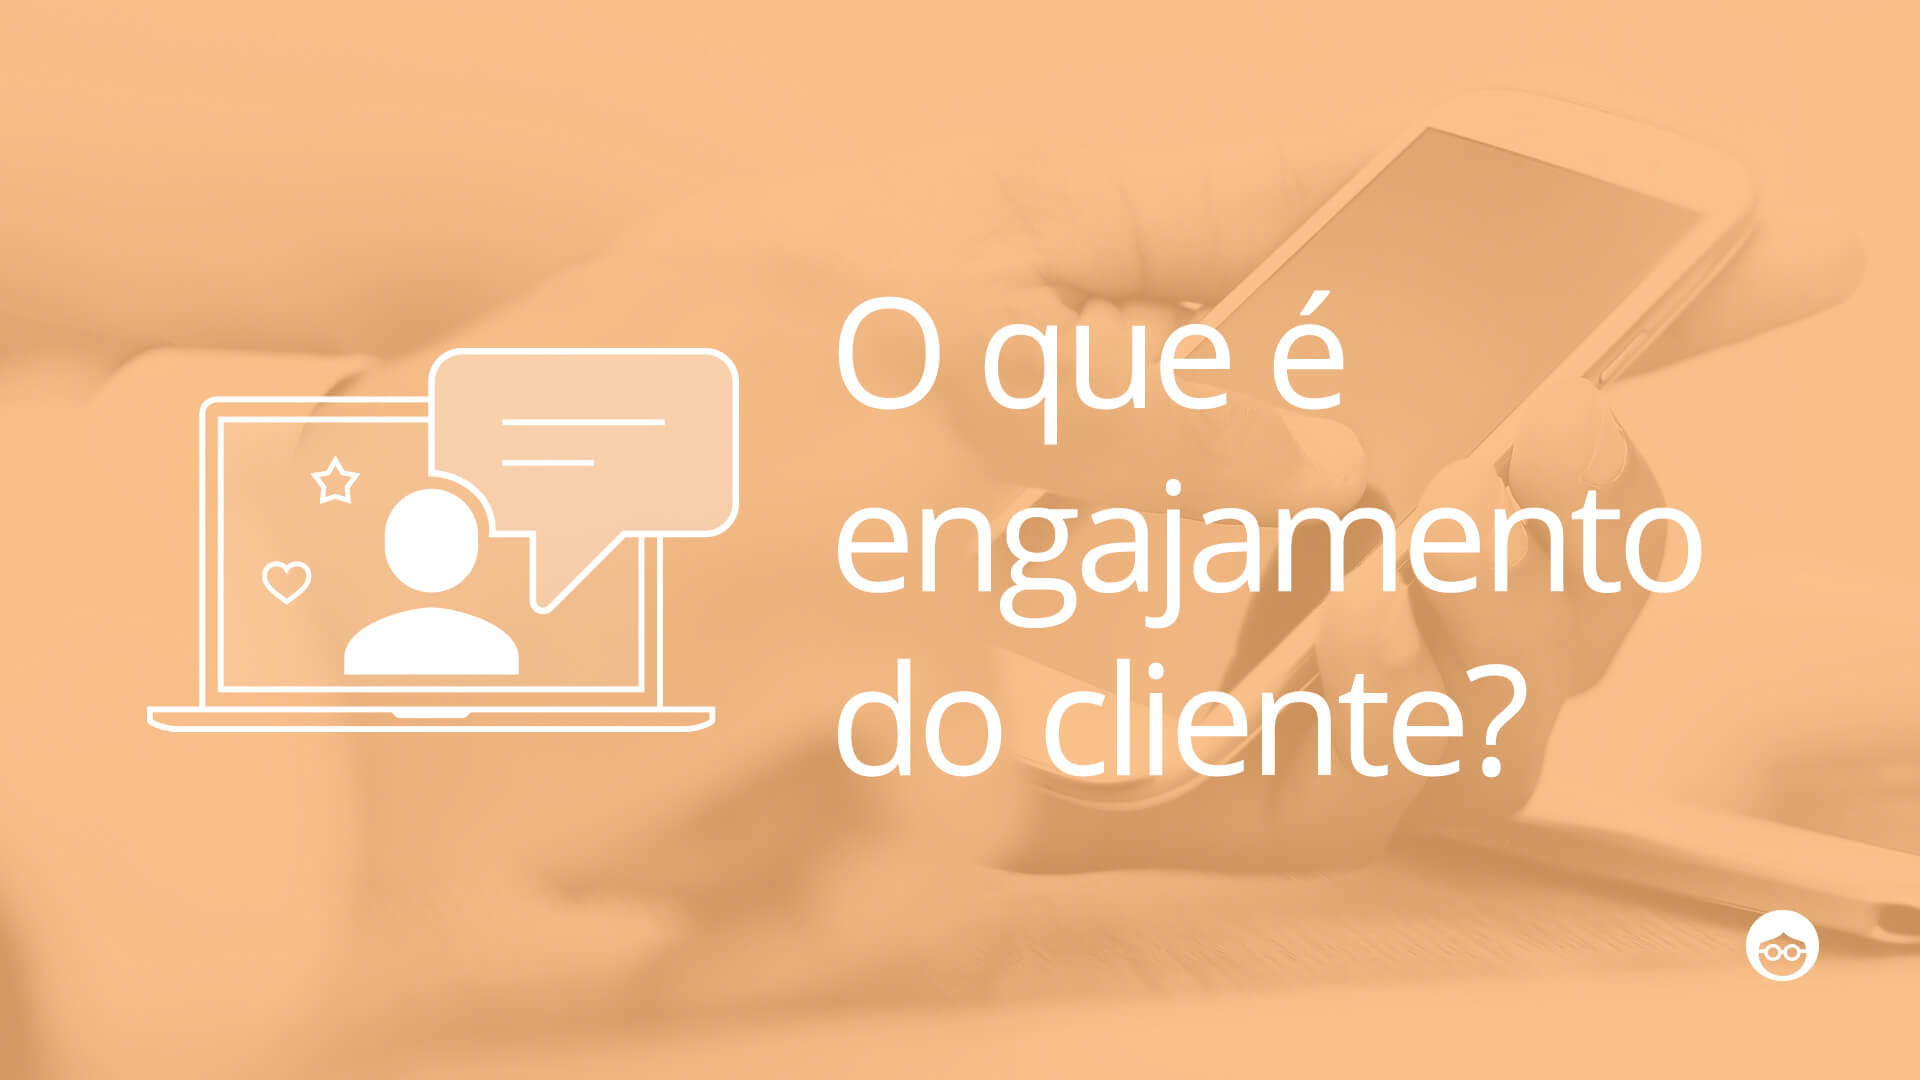 engajamento do cliente